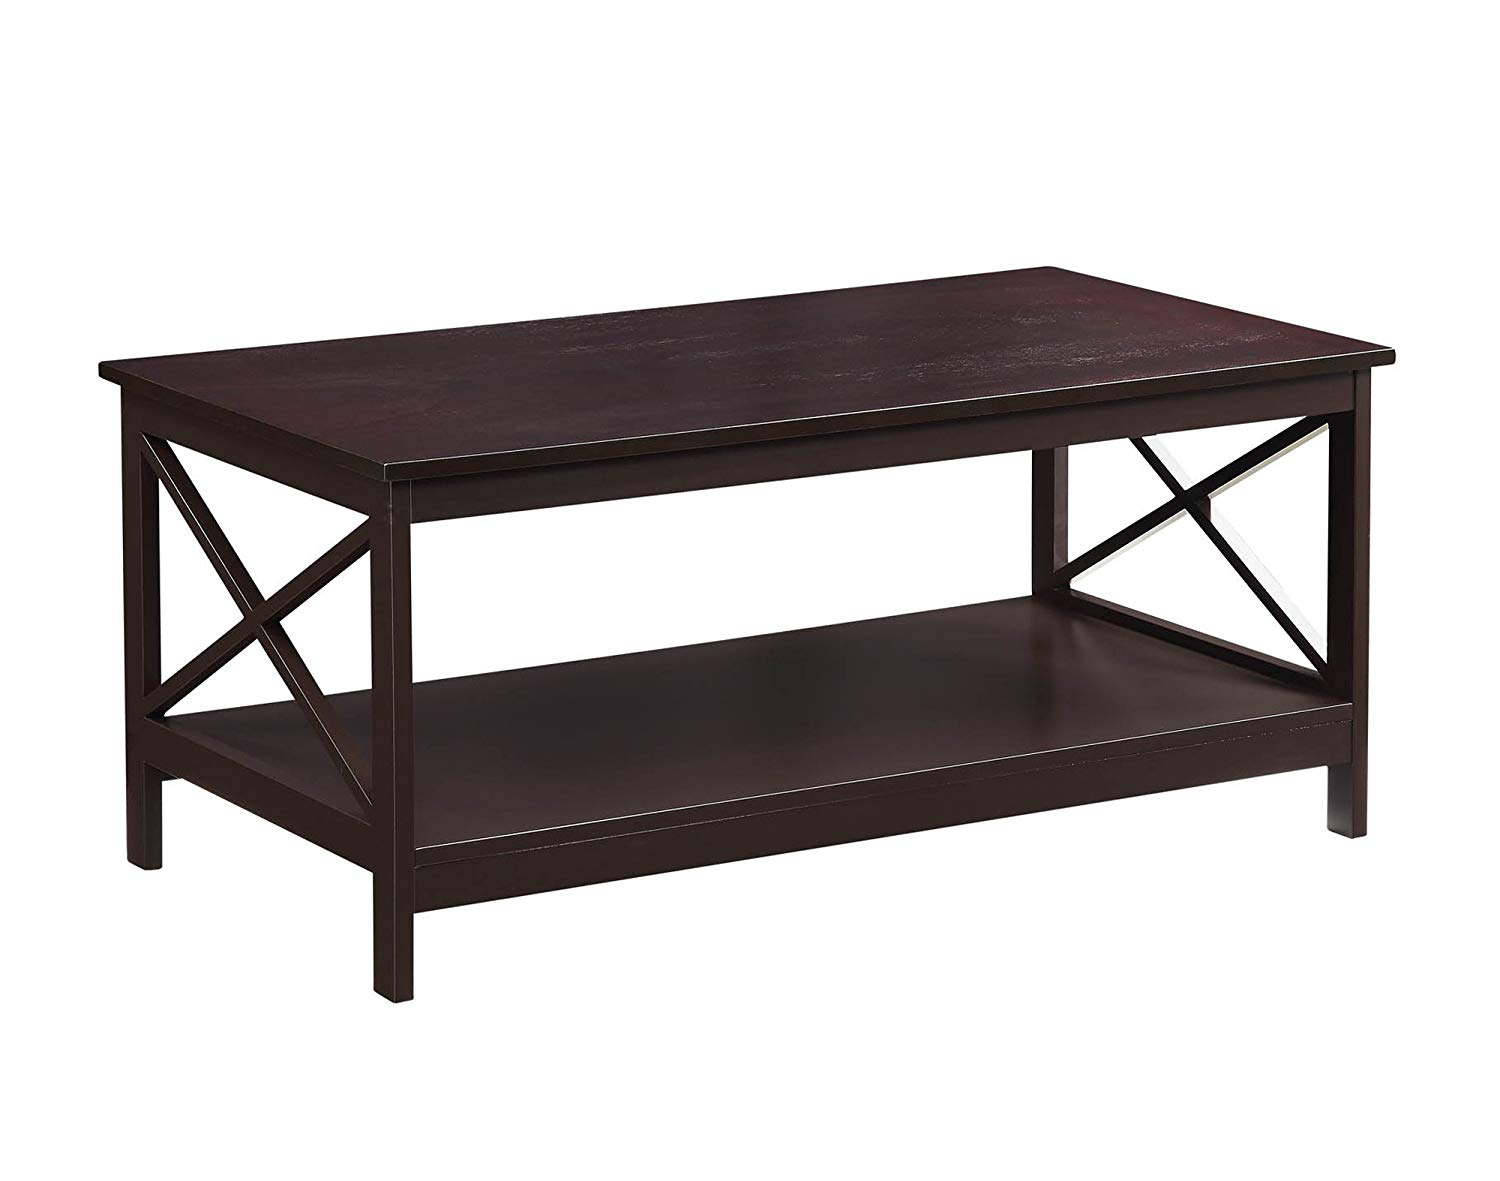 convenience concepts oxford coffee table espresso end kitchen dining light height jysk ashley furniture for less small contemporary log base frosted glass side ethan allen